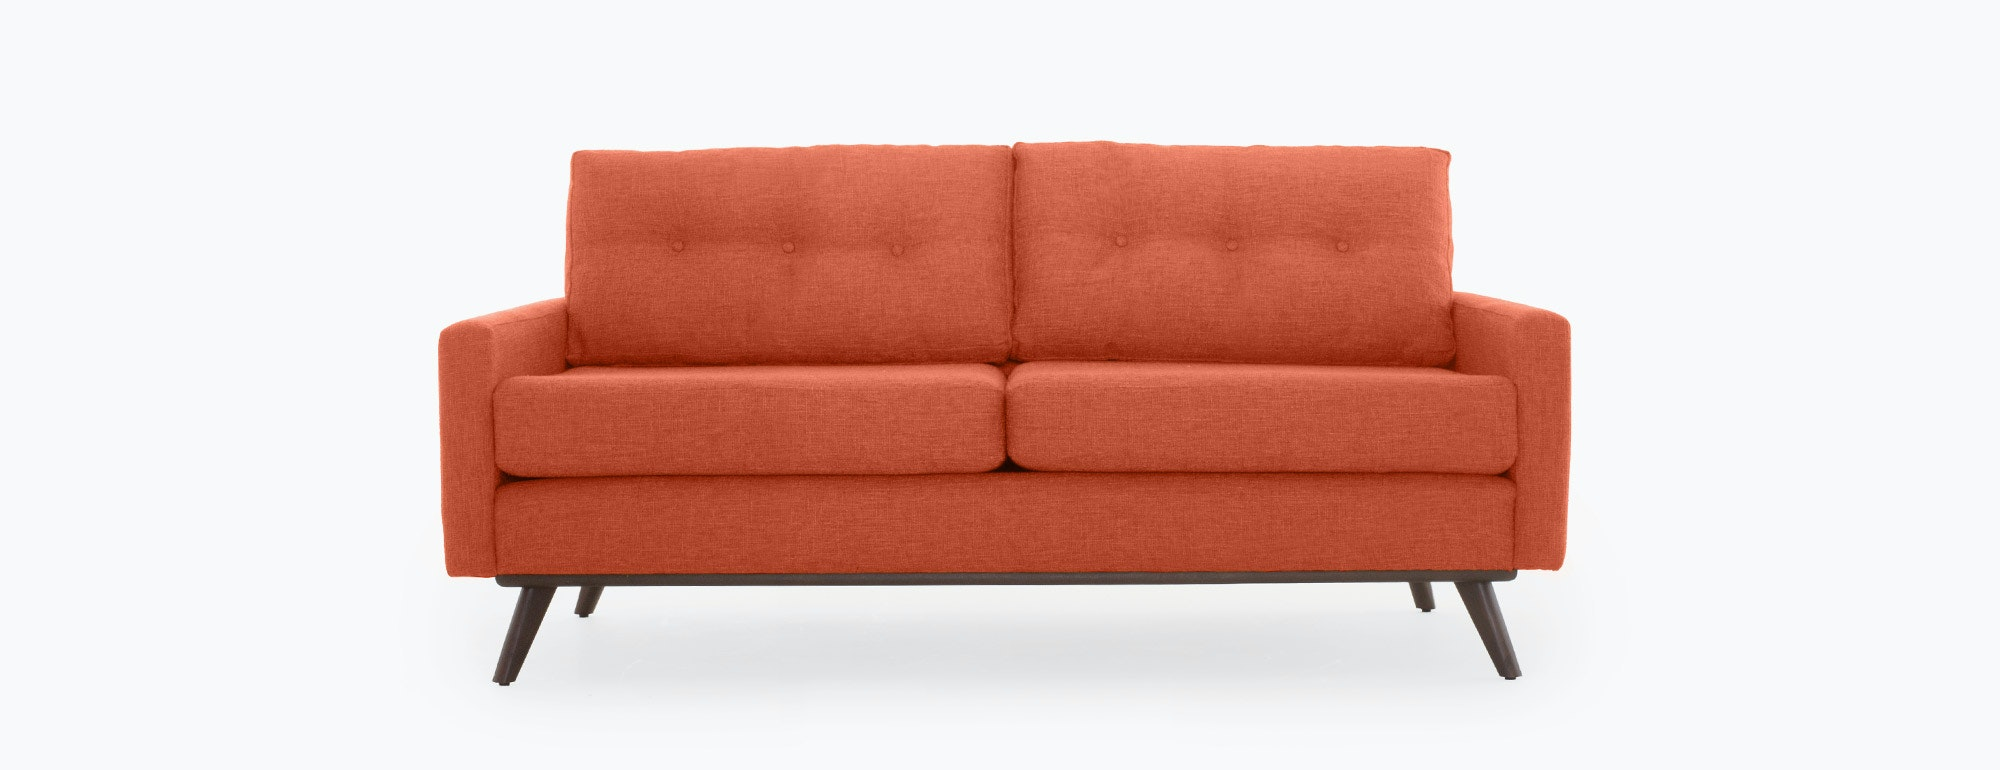 Hopson Apartment Sofa Joybird : hero hughes sofa 1 from joybird.com size 2000 x 770 jpeg 138kB